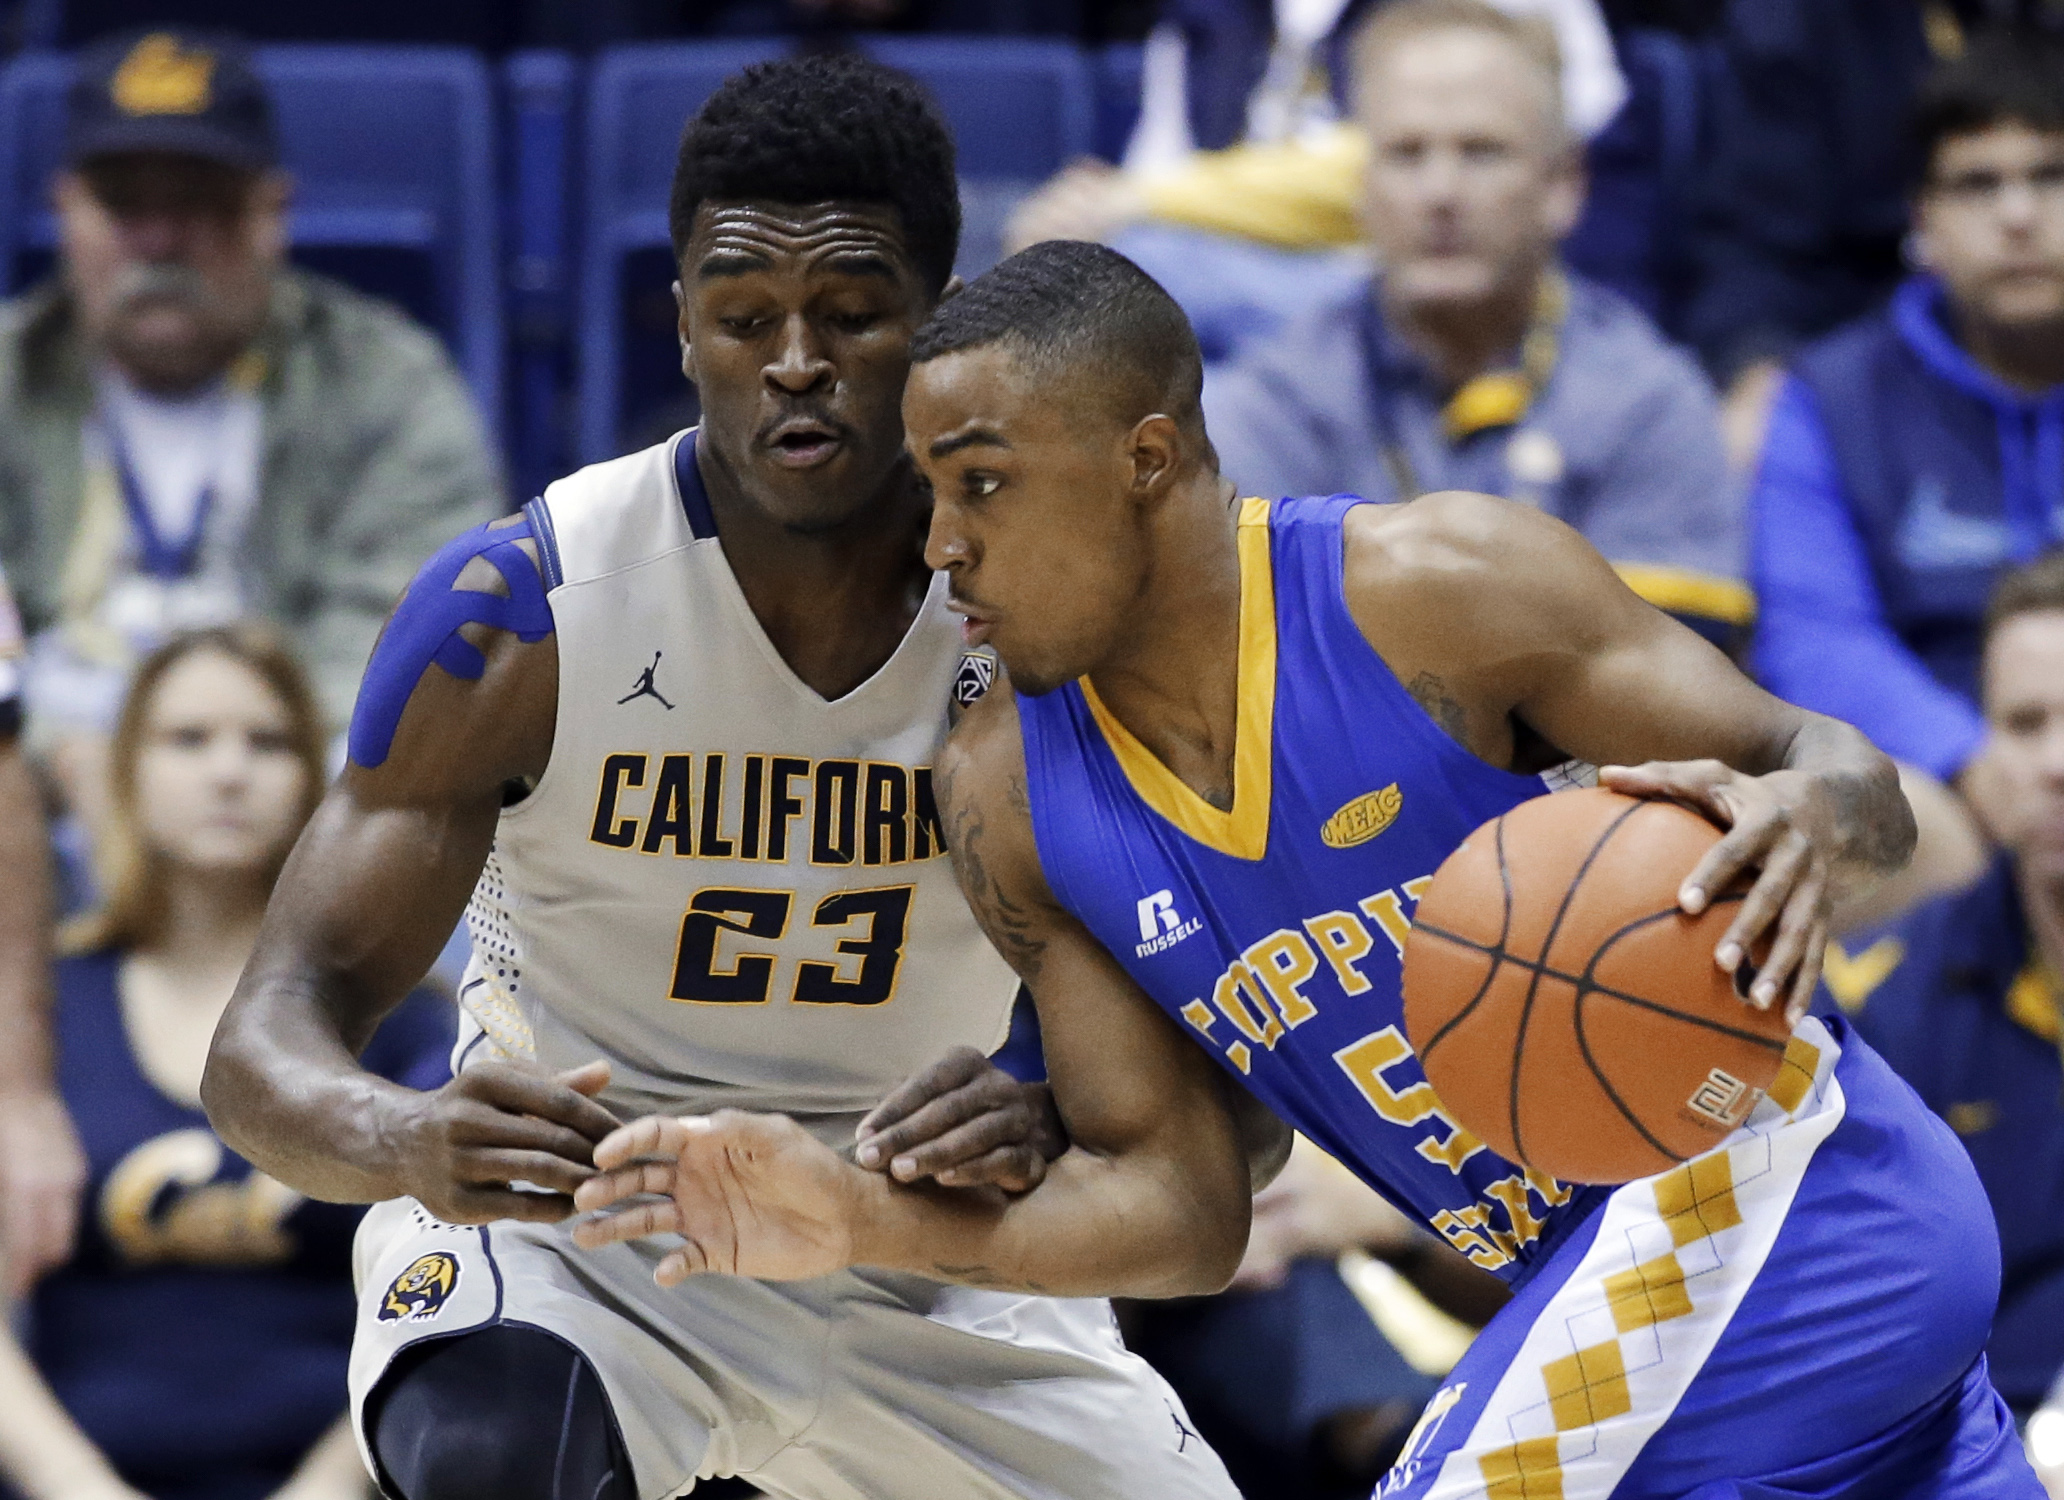 Coppin State guard James Sylvester (5) tries to dribble around California guard Jabari Bird (23) during the first half of an NCAA college basketball game Saturday, Dec. 19, 2015, in Berkeley, Calif. (AP Photo/Marcio Jose Sanchez)